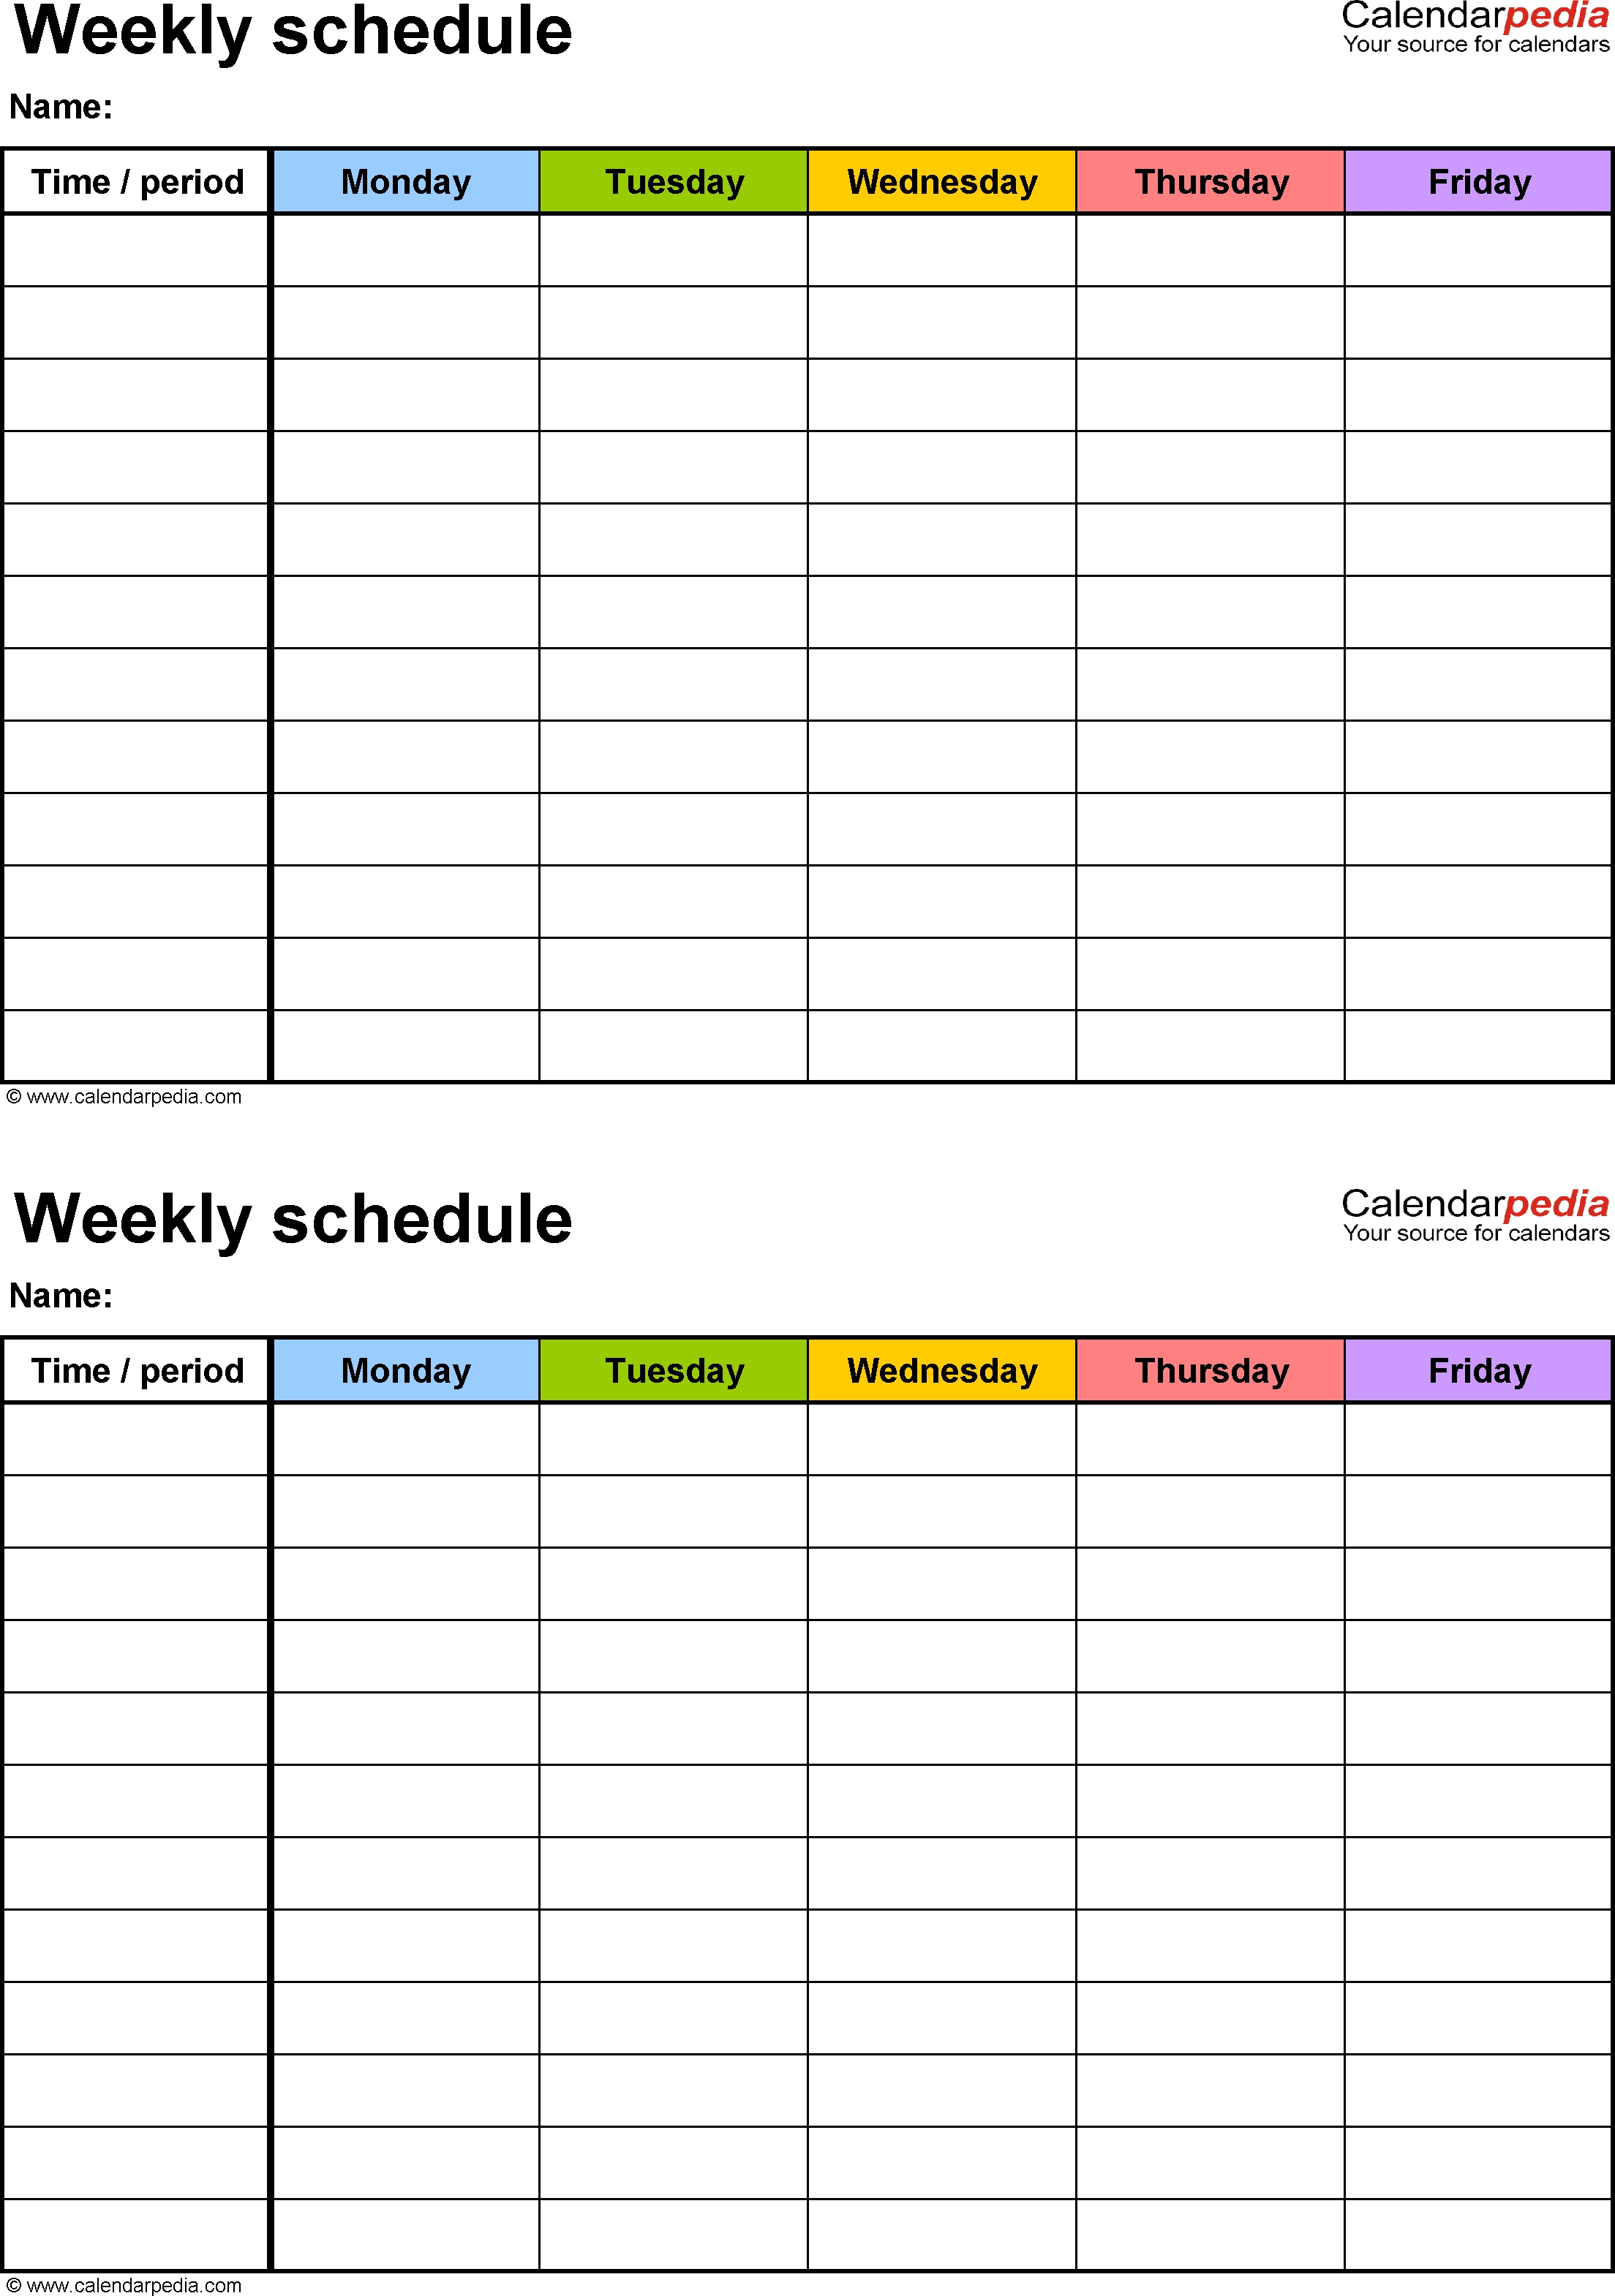 Free Weekly Schedule Templates For Word - 18 Templates To Fill In Blank Calendar Monday Friday